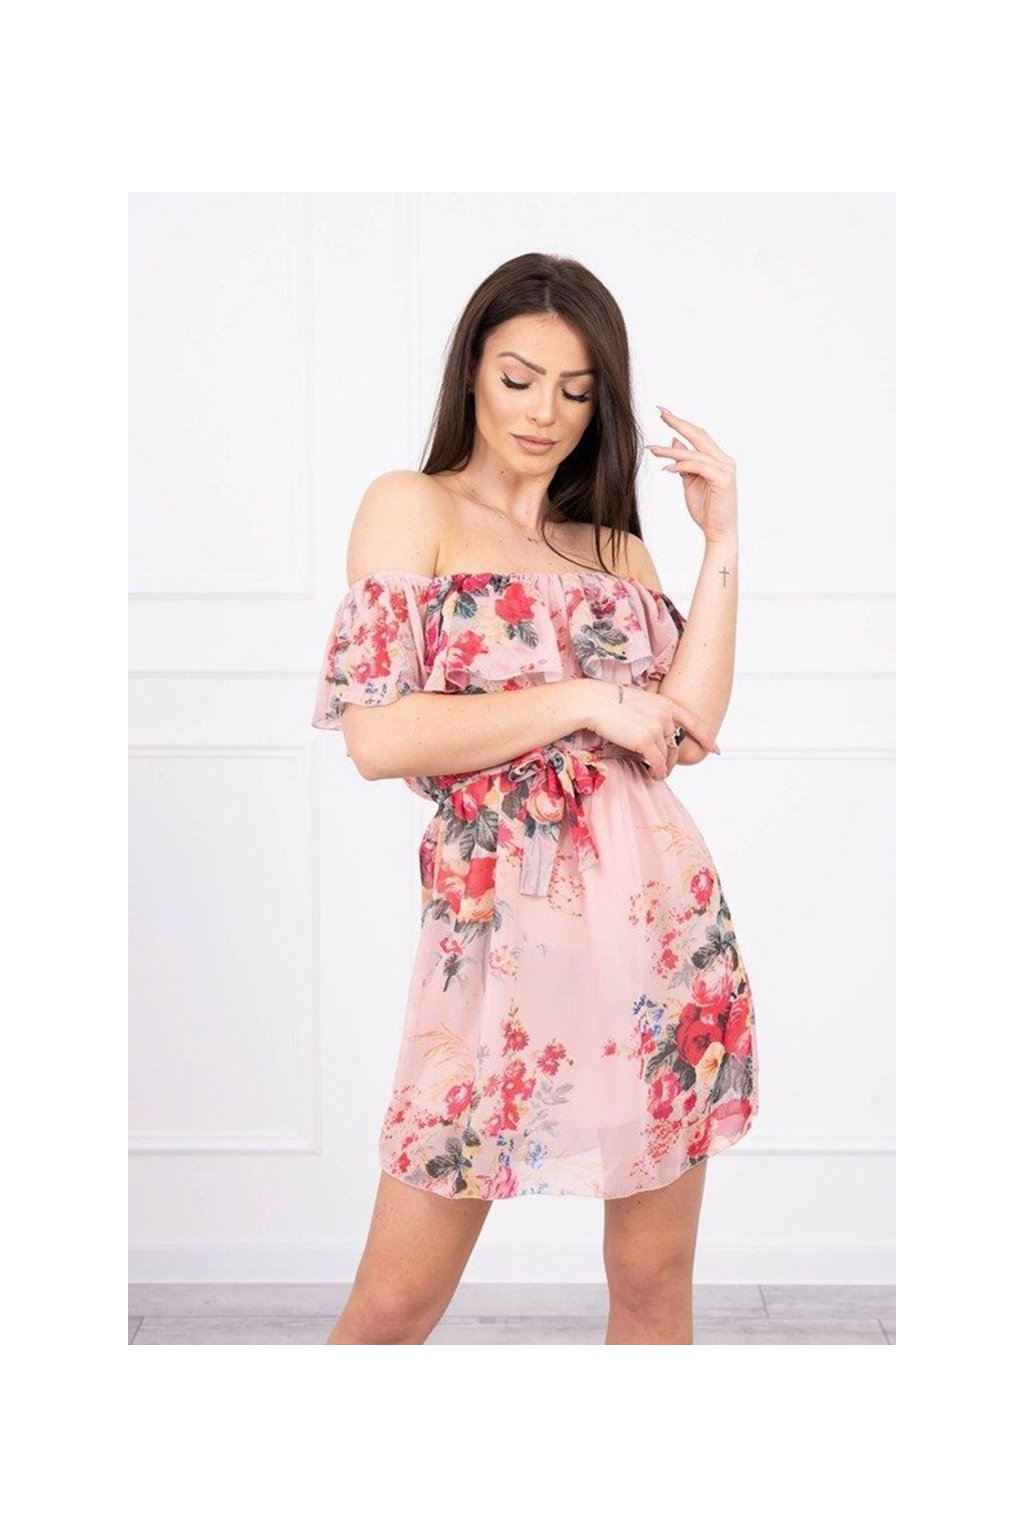 eng pm Off the shoulder floral dress powdered pink 17234 3